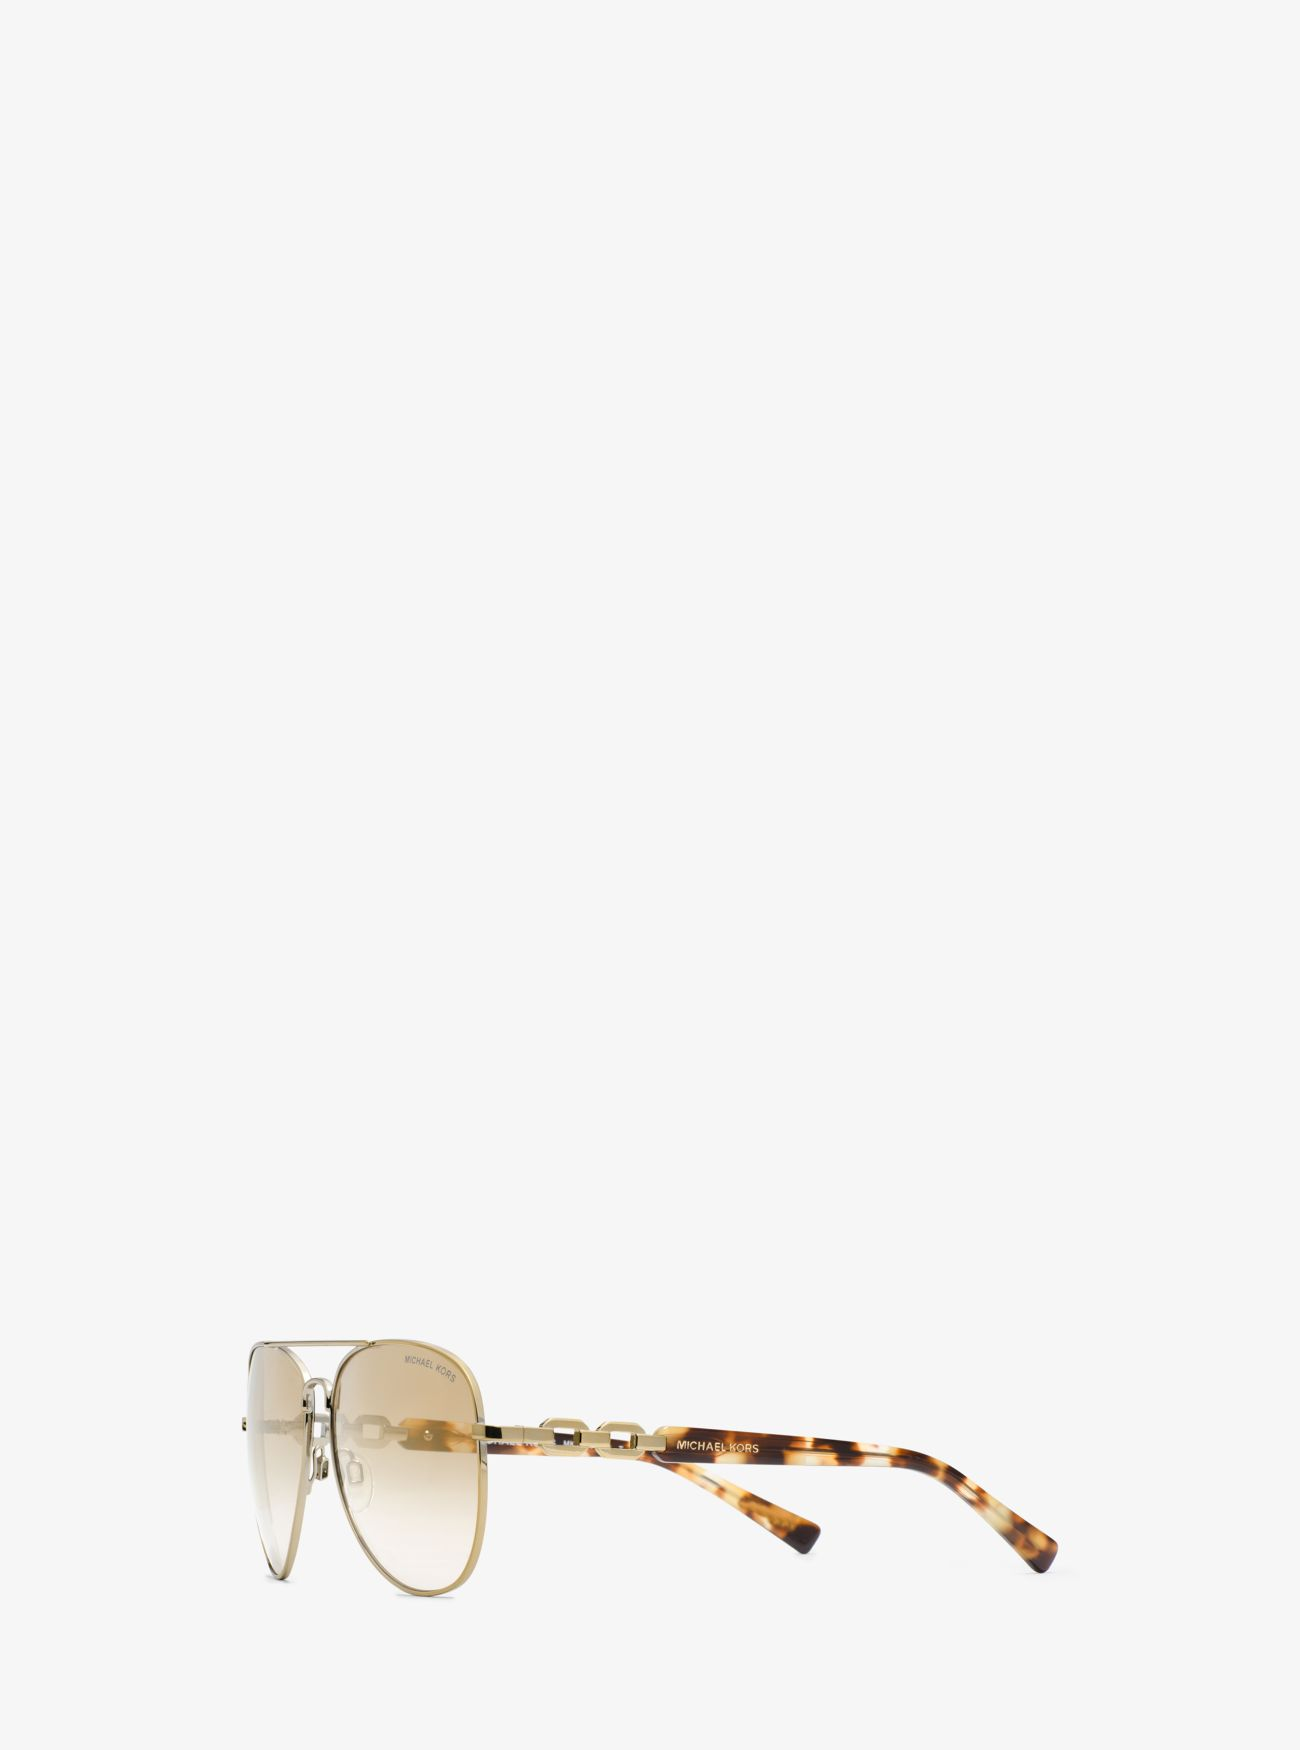 michael kors aviators h0tv  Fiji Sunglasses Fiji Sunglasses Fiji Sunglasses MICHAEL KORS